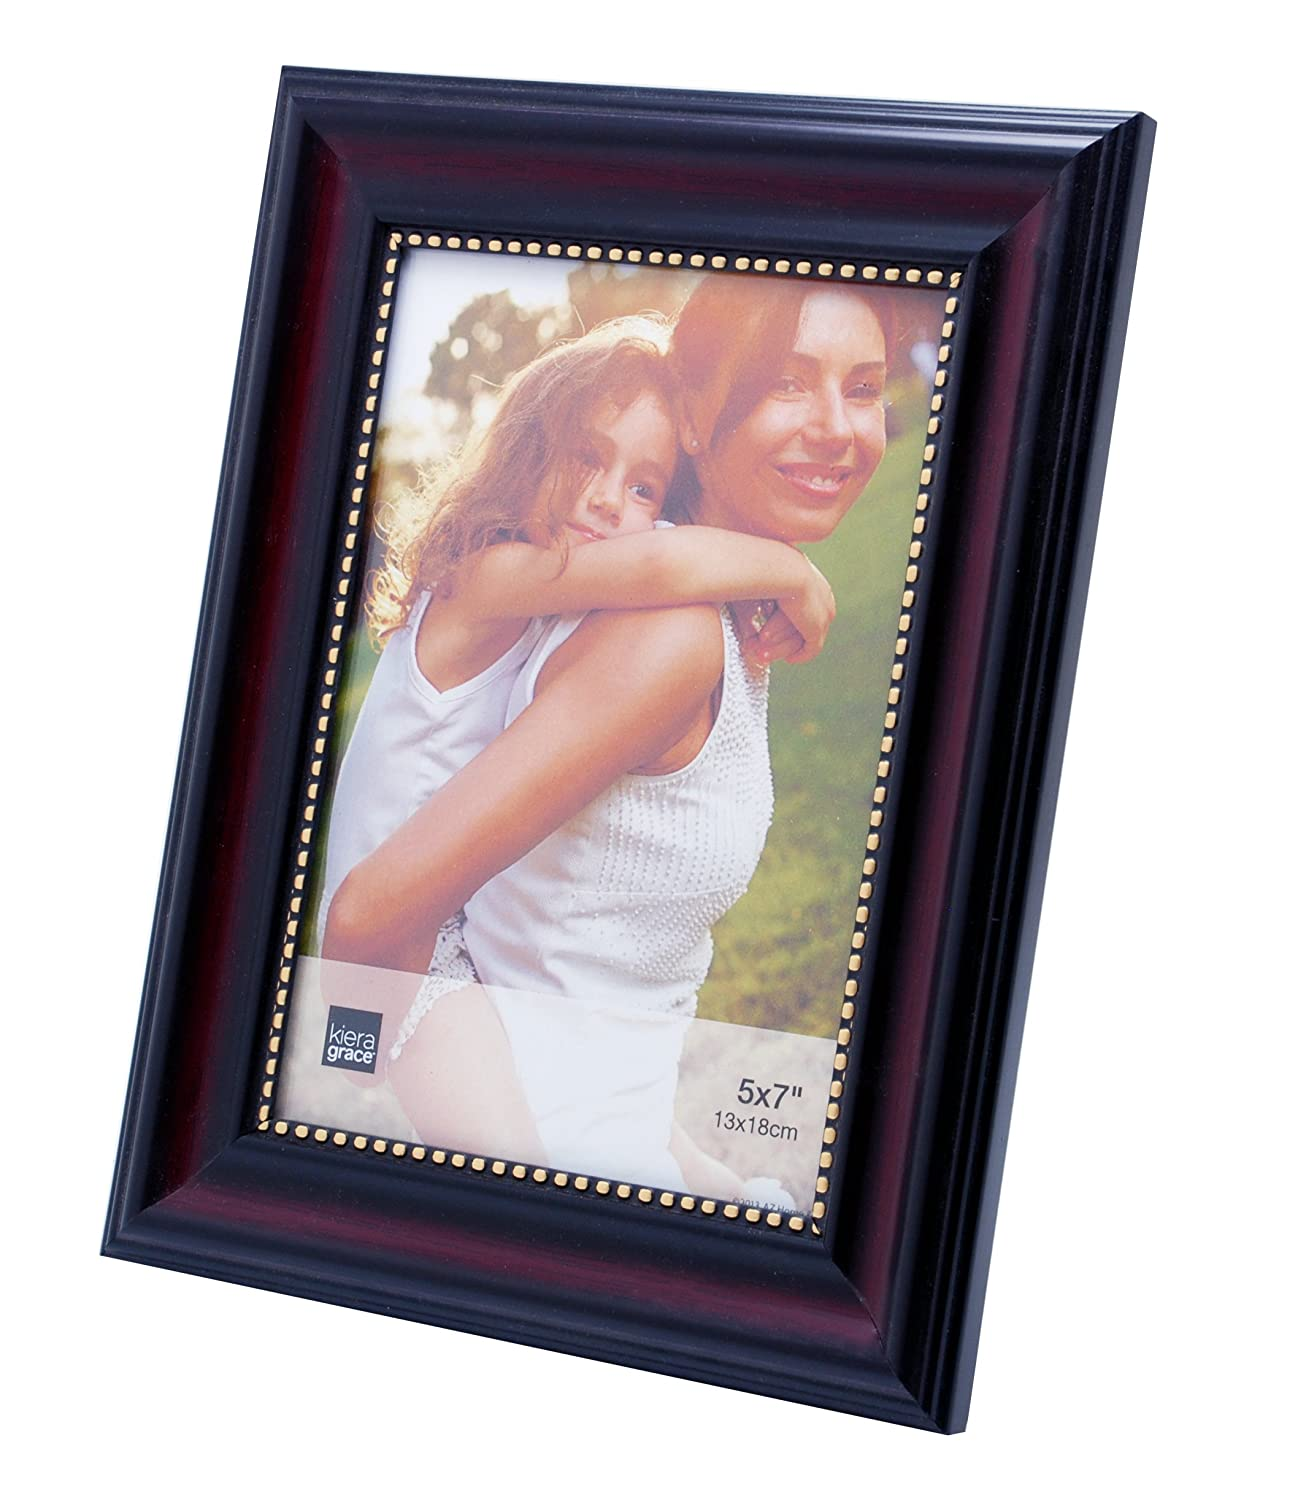 Amazon kiera grace lucy picture frame 5 by 7 inch dark amazon kiera grace lucy picture frame 5 by 7 inch dark brown with gold beading home kitchen jeuxipadfo Choice Image